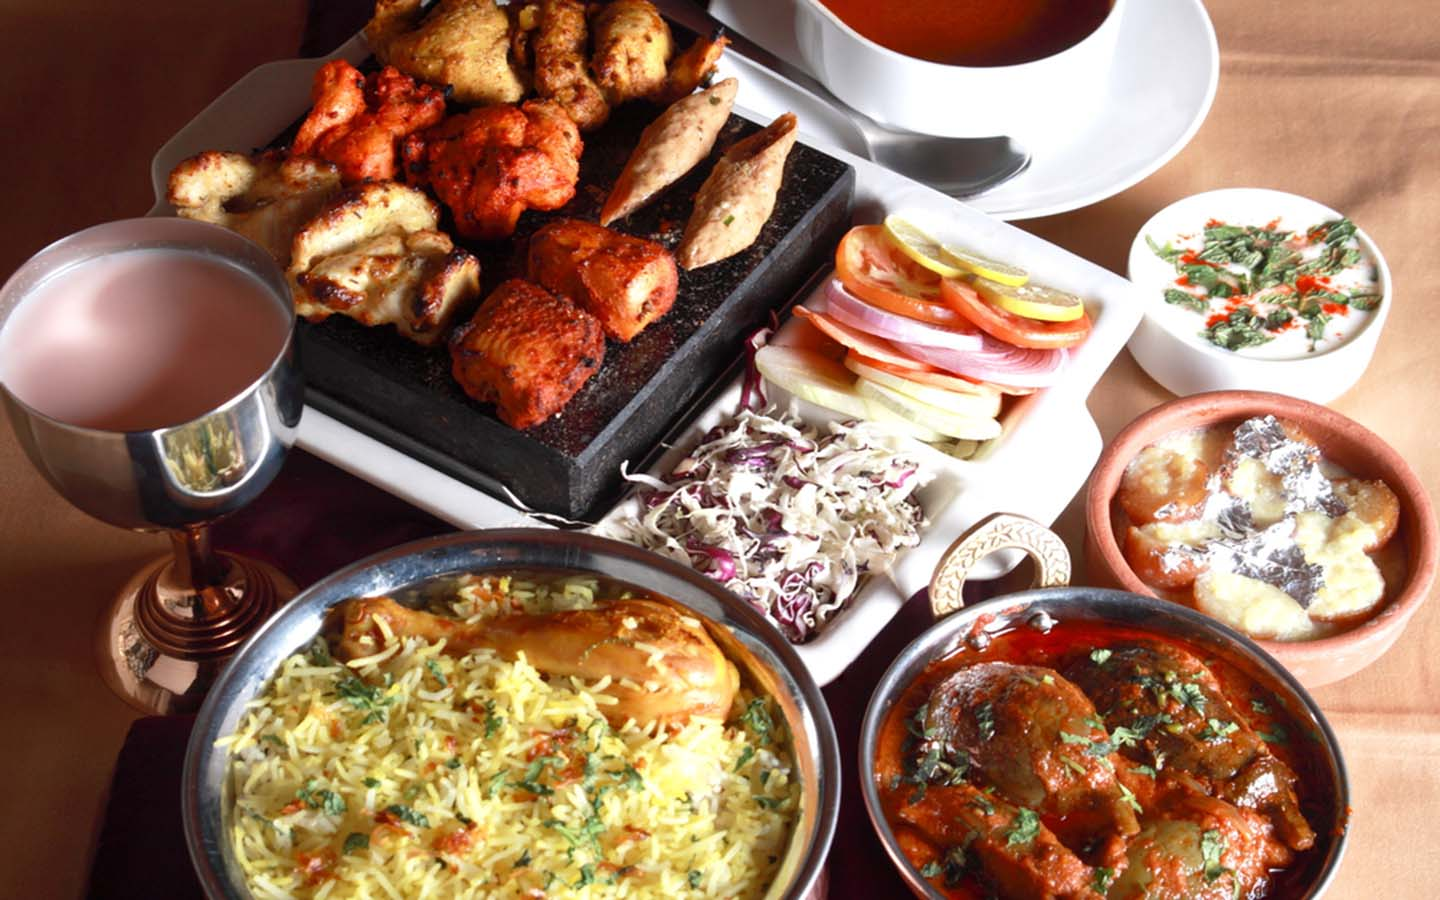 Arabian foods available at different restaurants in Al Qusais